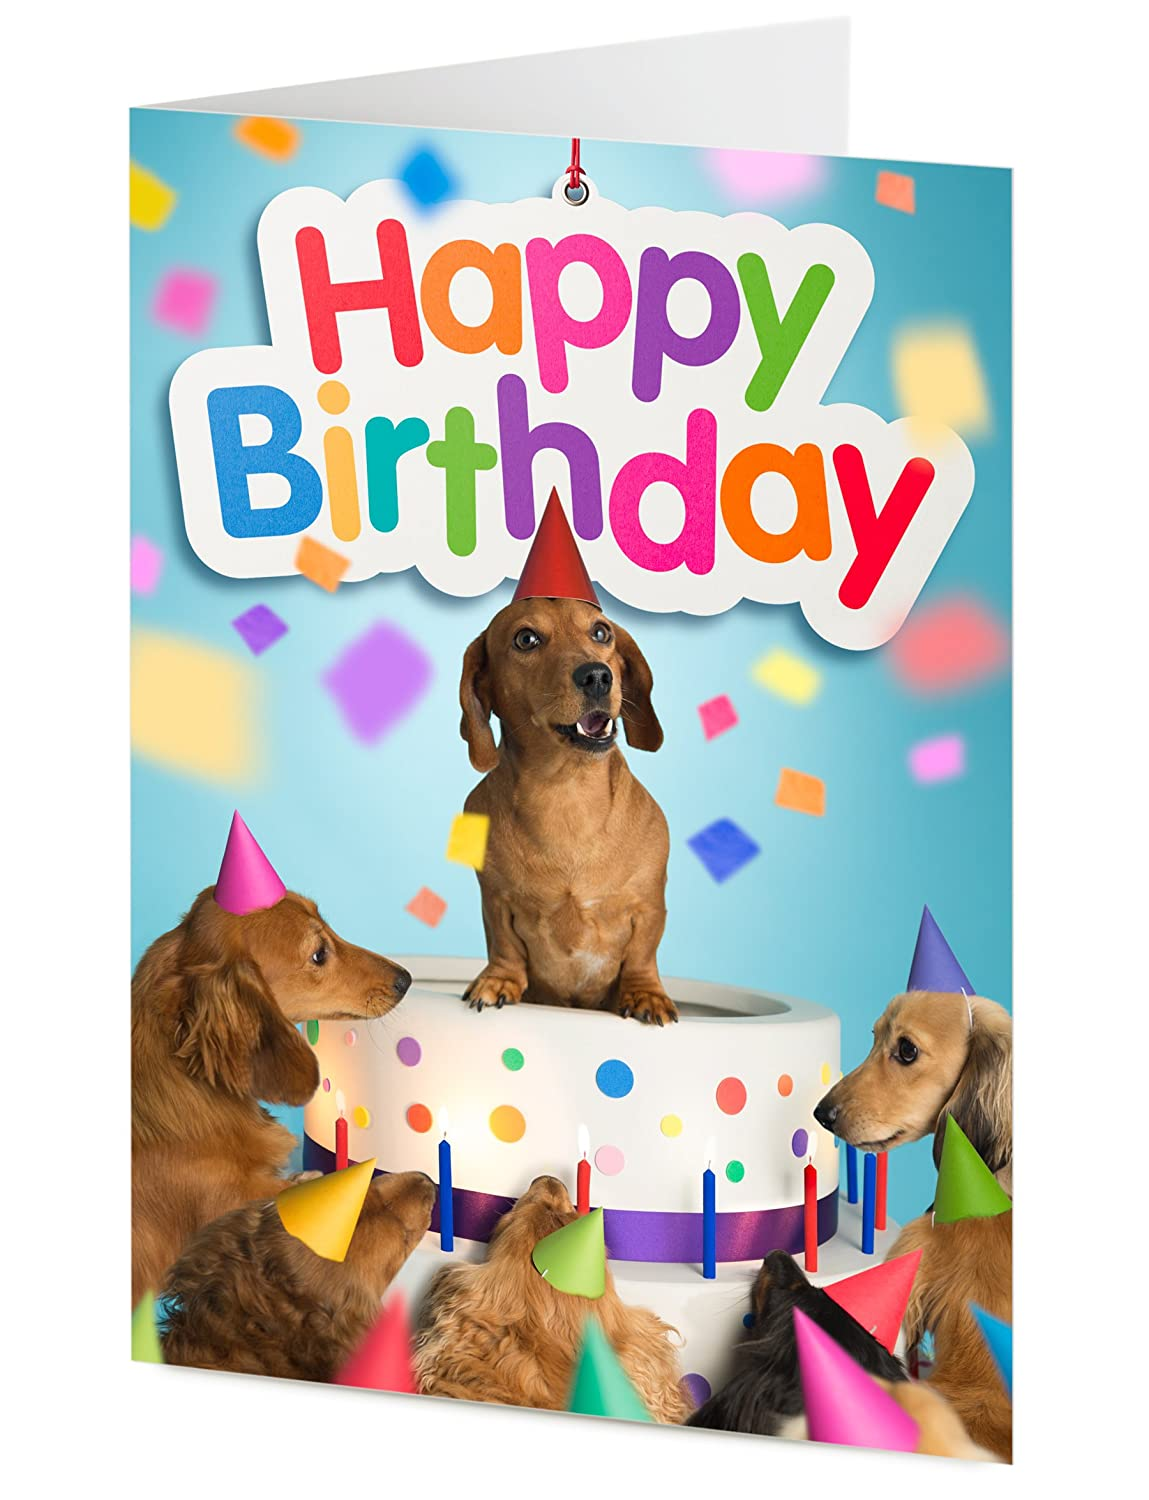 Dachshund sausage dog and friends emerge from giant birthday cake dachshund sausage dog and friends emerge from giant birthday cake birthday card amazon office products kristyandbryce Choice Image